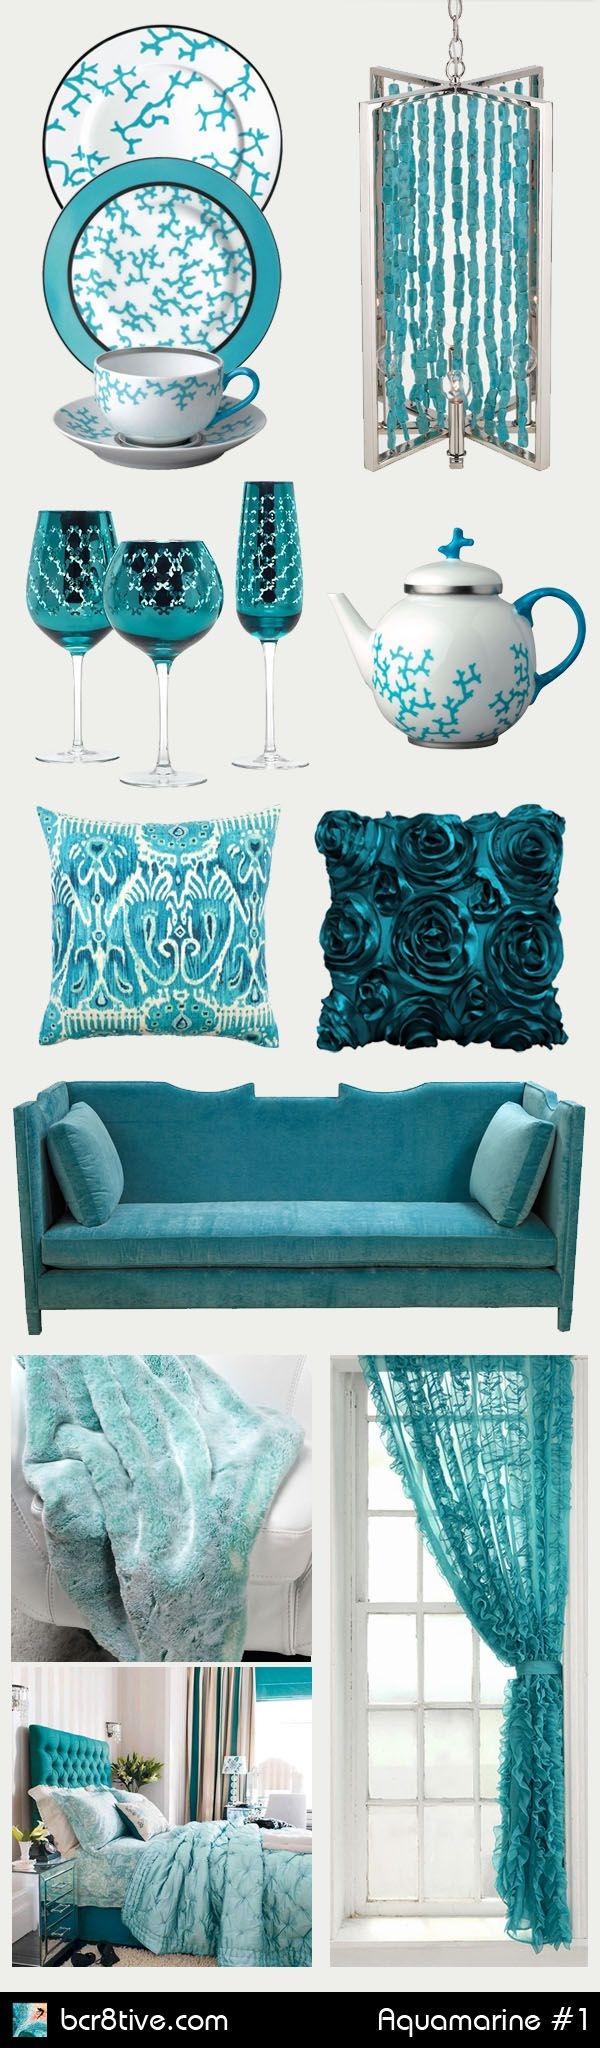 best 25+ turquoise curtains ideas on pinterest | teal kitchen